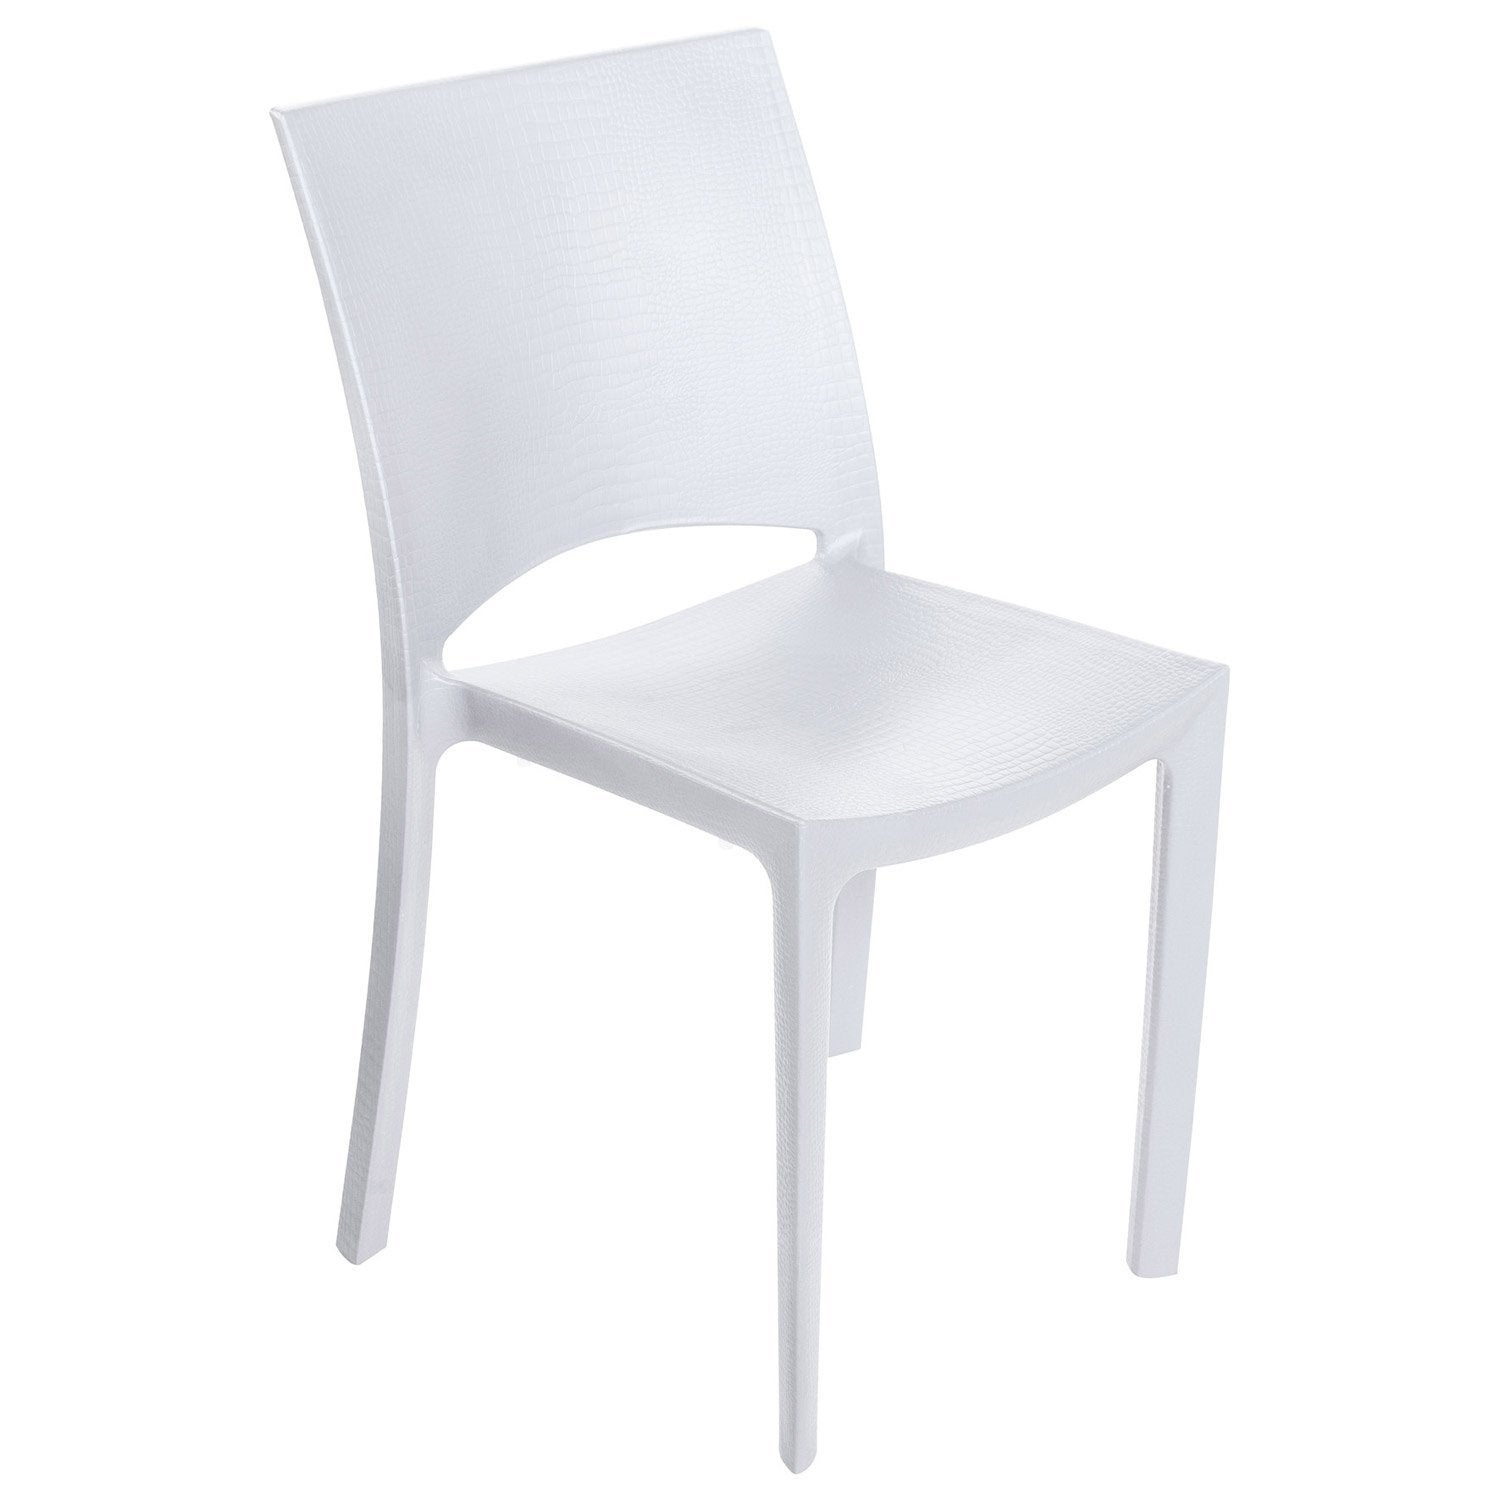 Chaise de jardin en r sine cocco blanc leroy merlin for Chaise longue leroy merlin